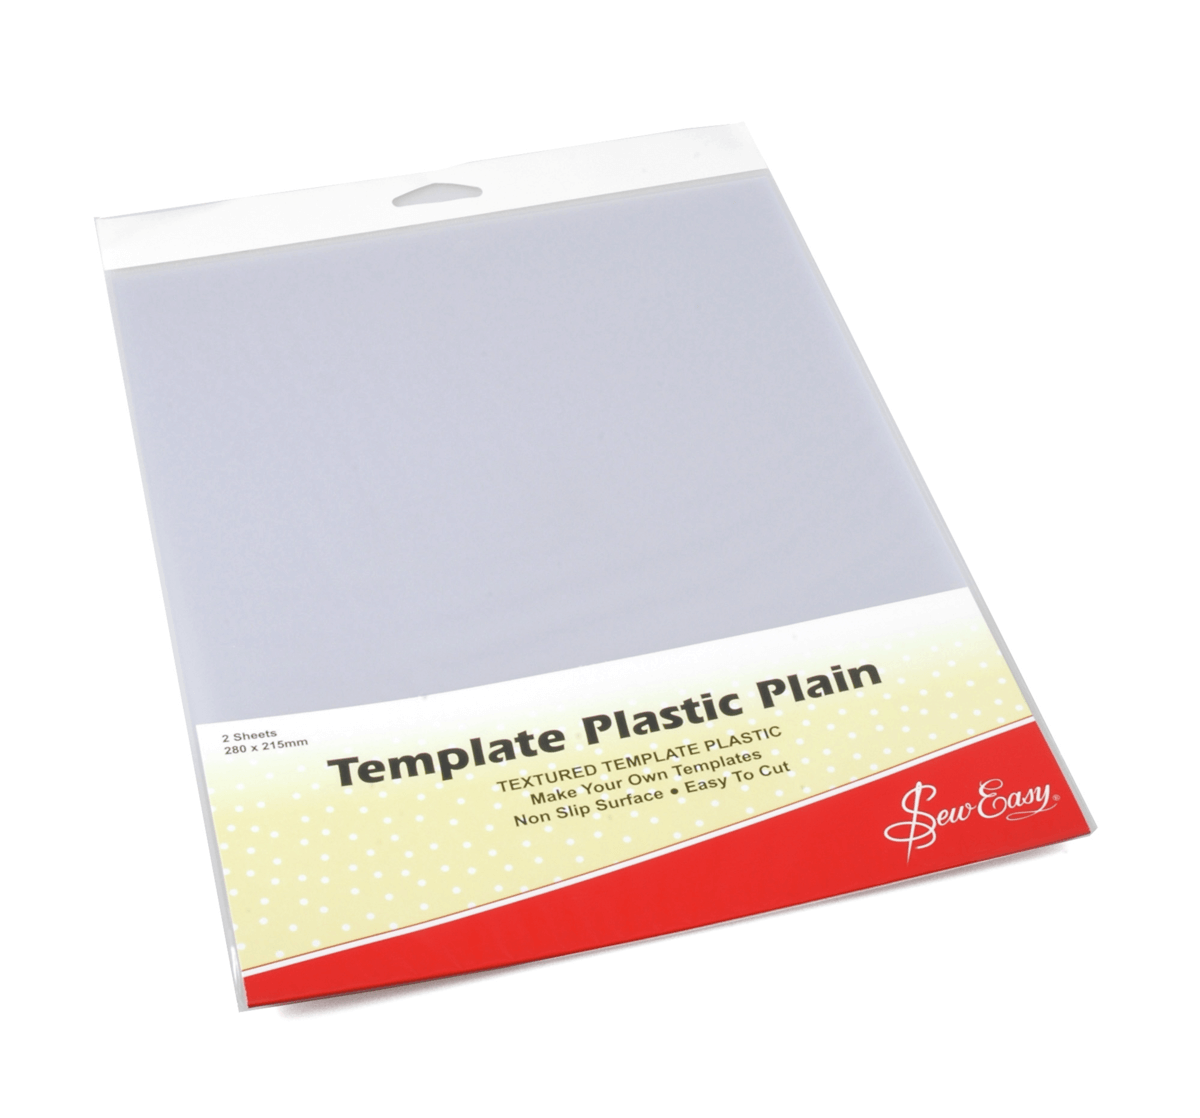 Sew Easy Plain Template Maker Plastic Easy Cut & Shape